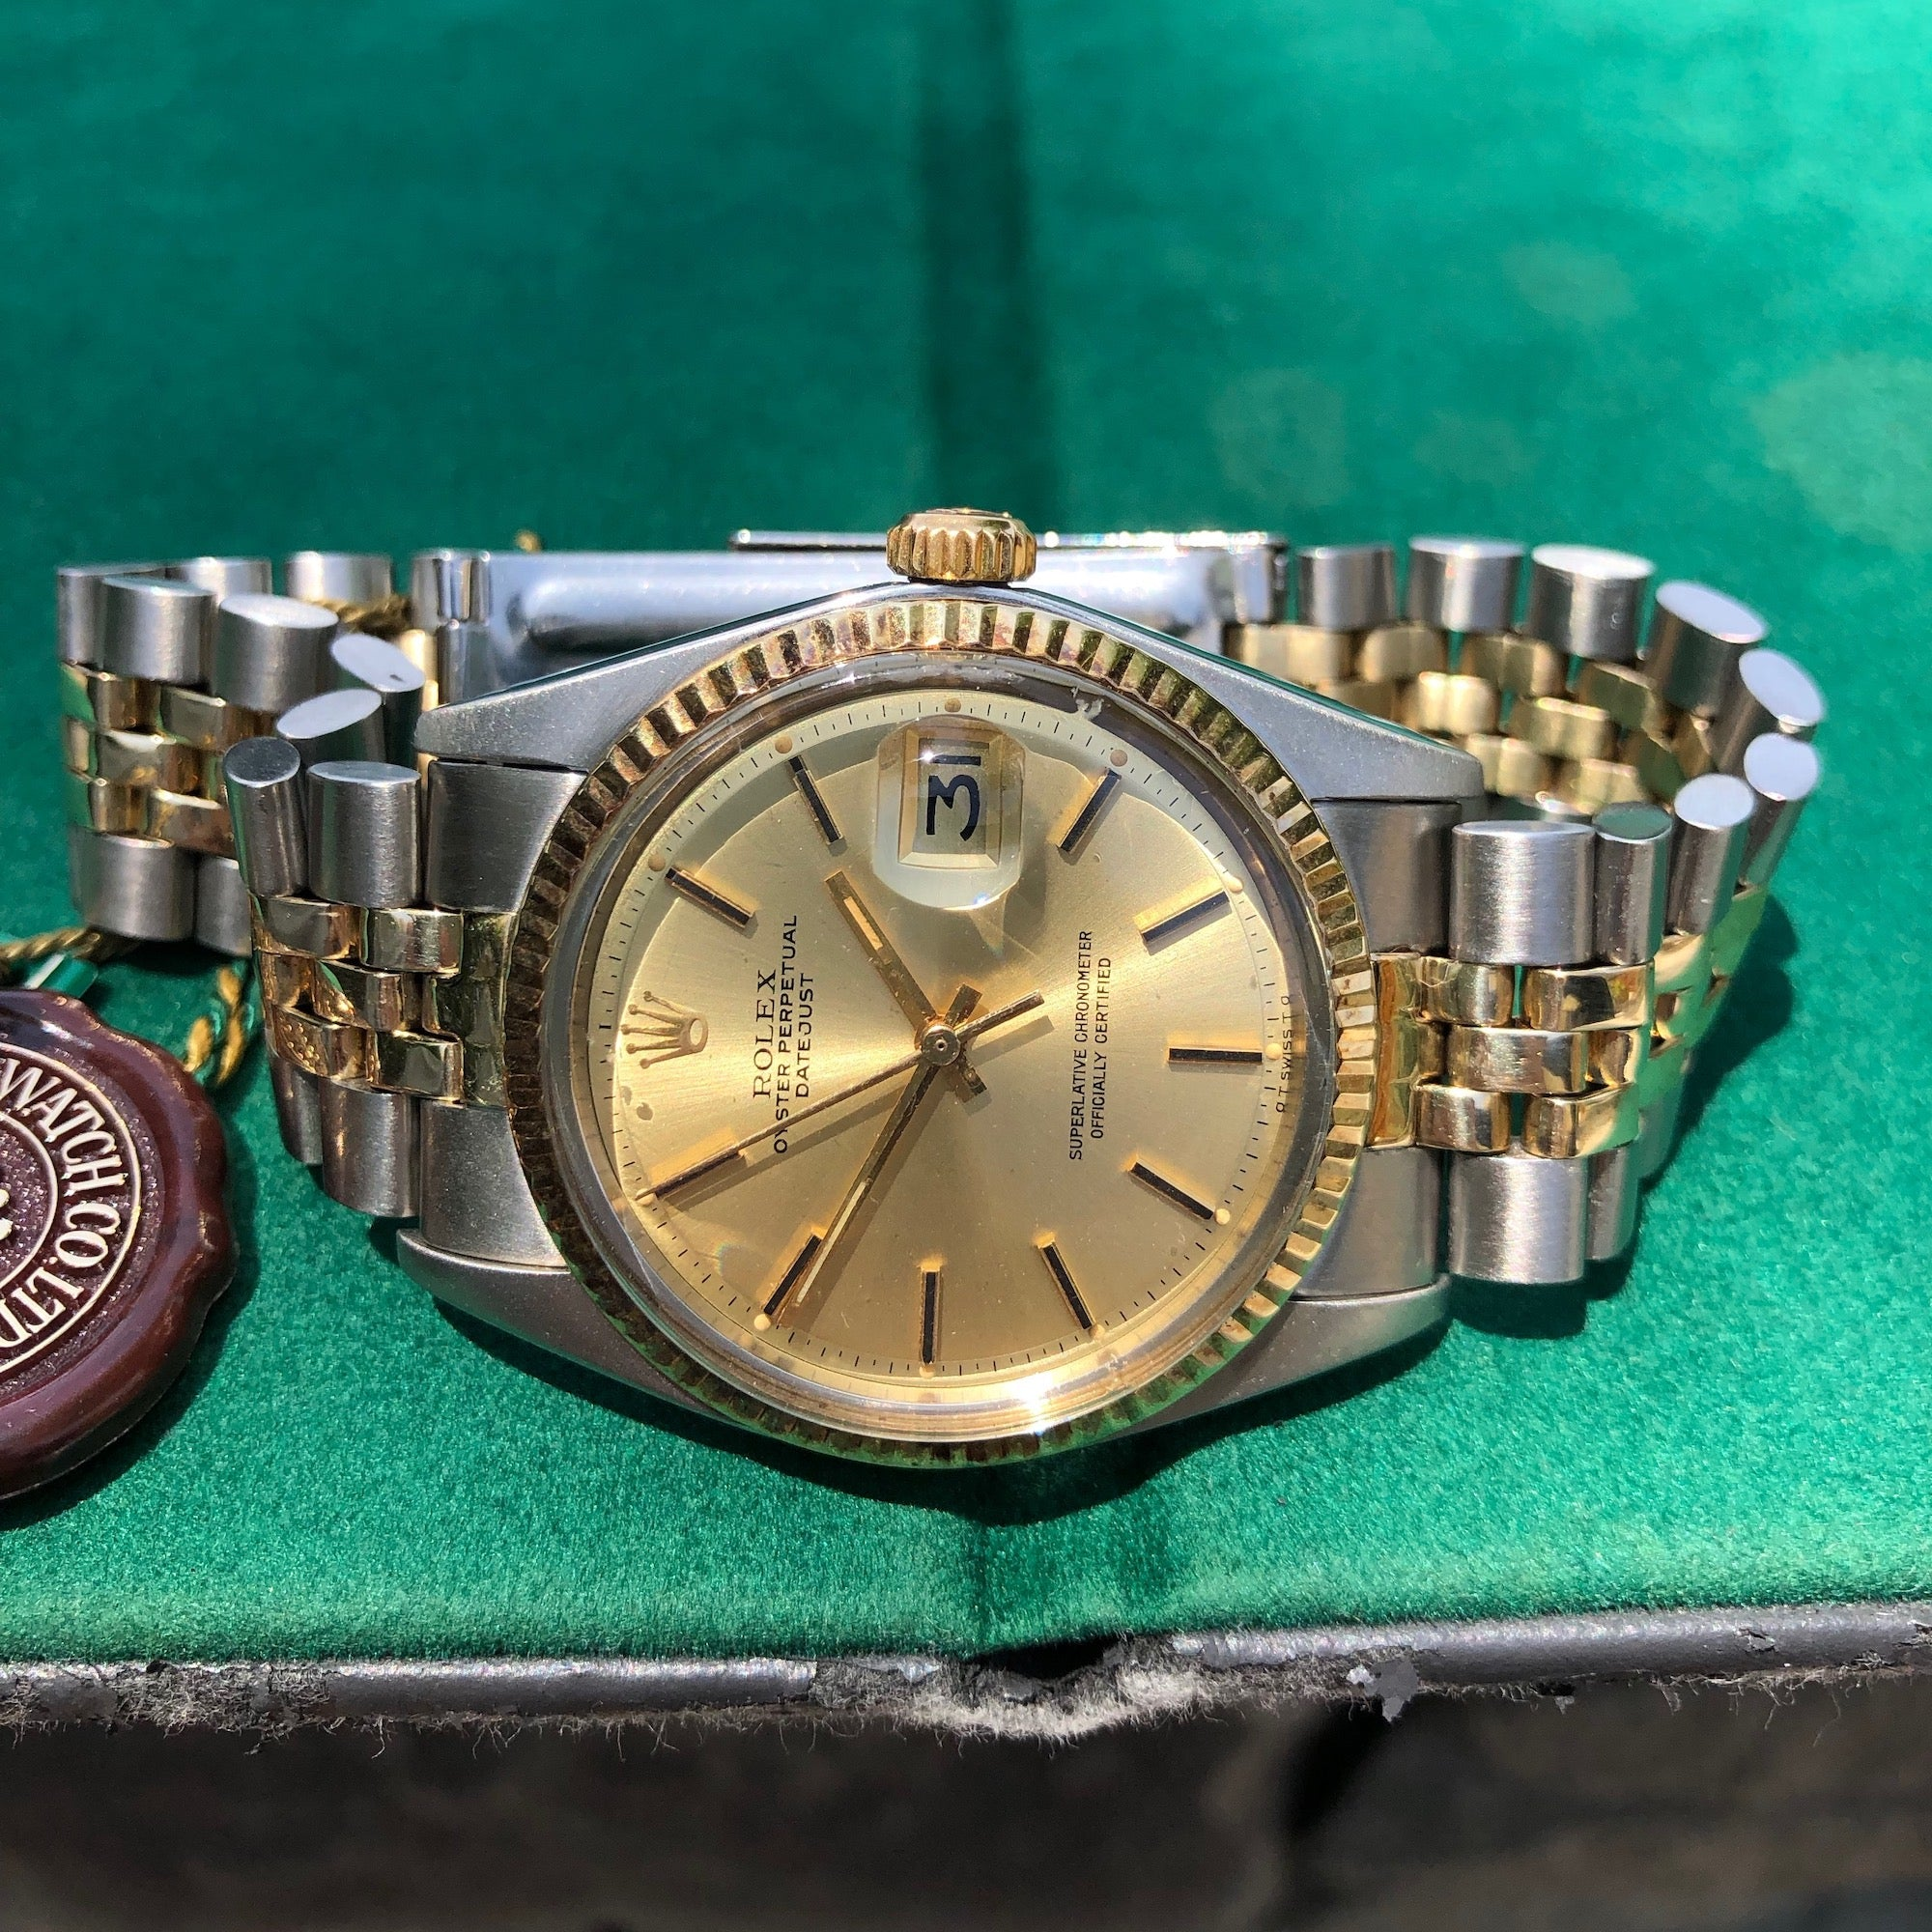 Vintage Rolex Datejust 1601 Sigma Steel Gold Two Tone Jubilee Champagne Automatic Wristwatch Box Papers Circa 1973 - Hashtag Watch Company